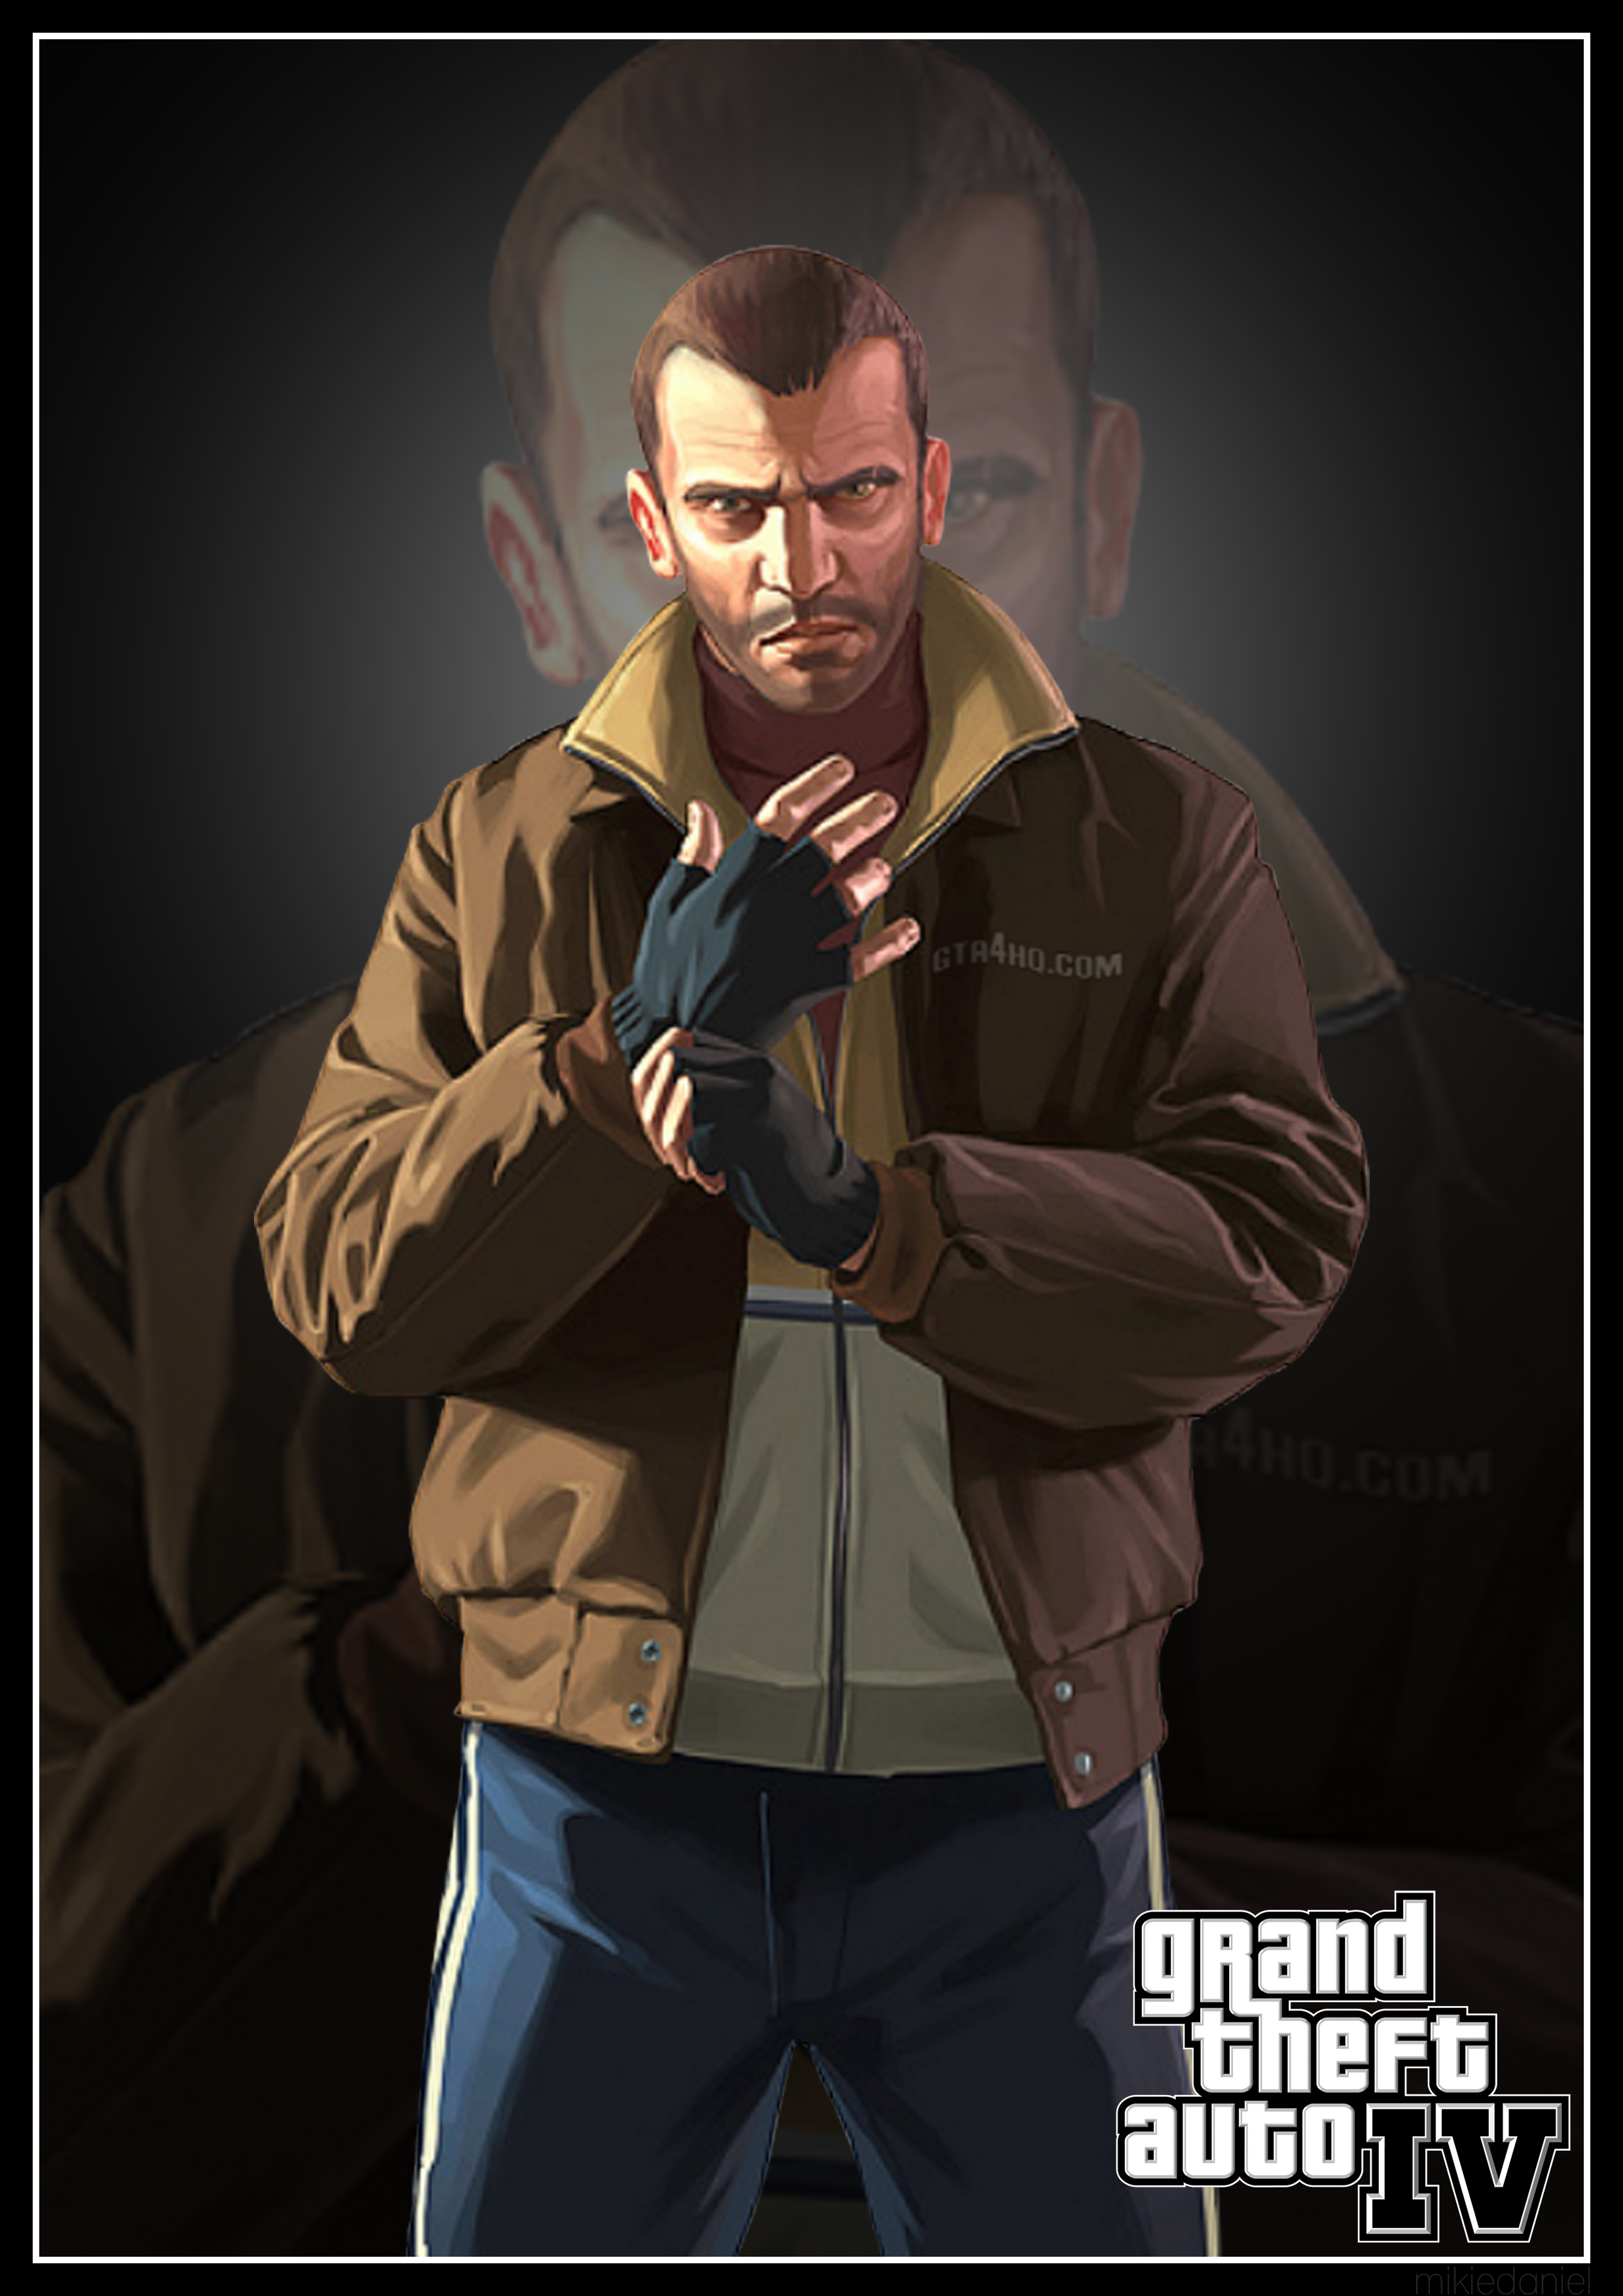 Grand Theft Auto Poster Art Series | Mikie Daniel The Girl With The Dragon Tattoo Poster